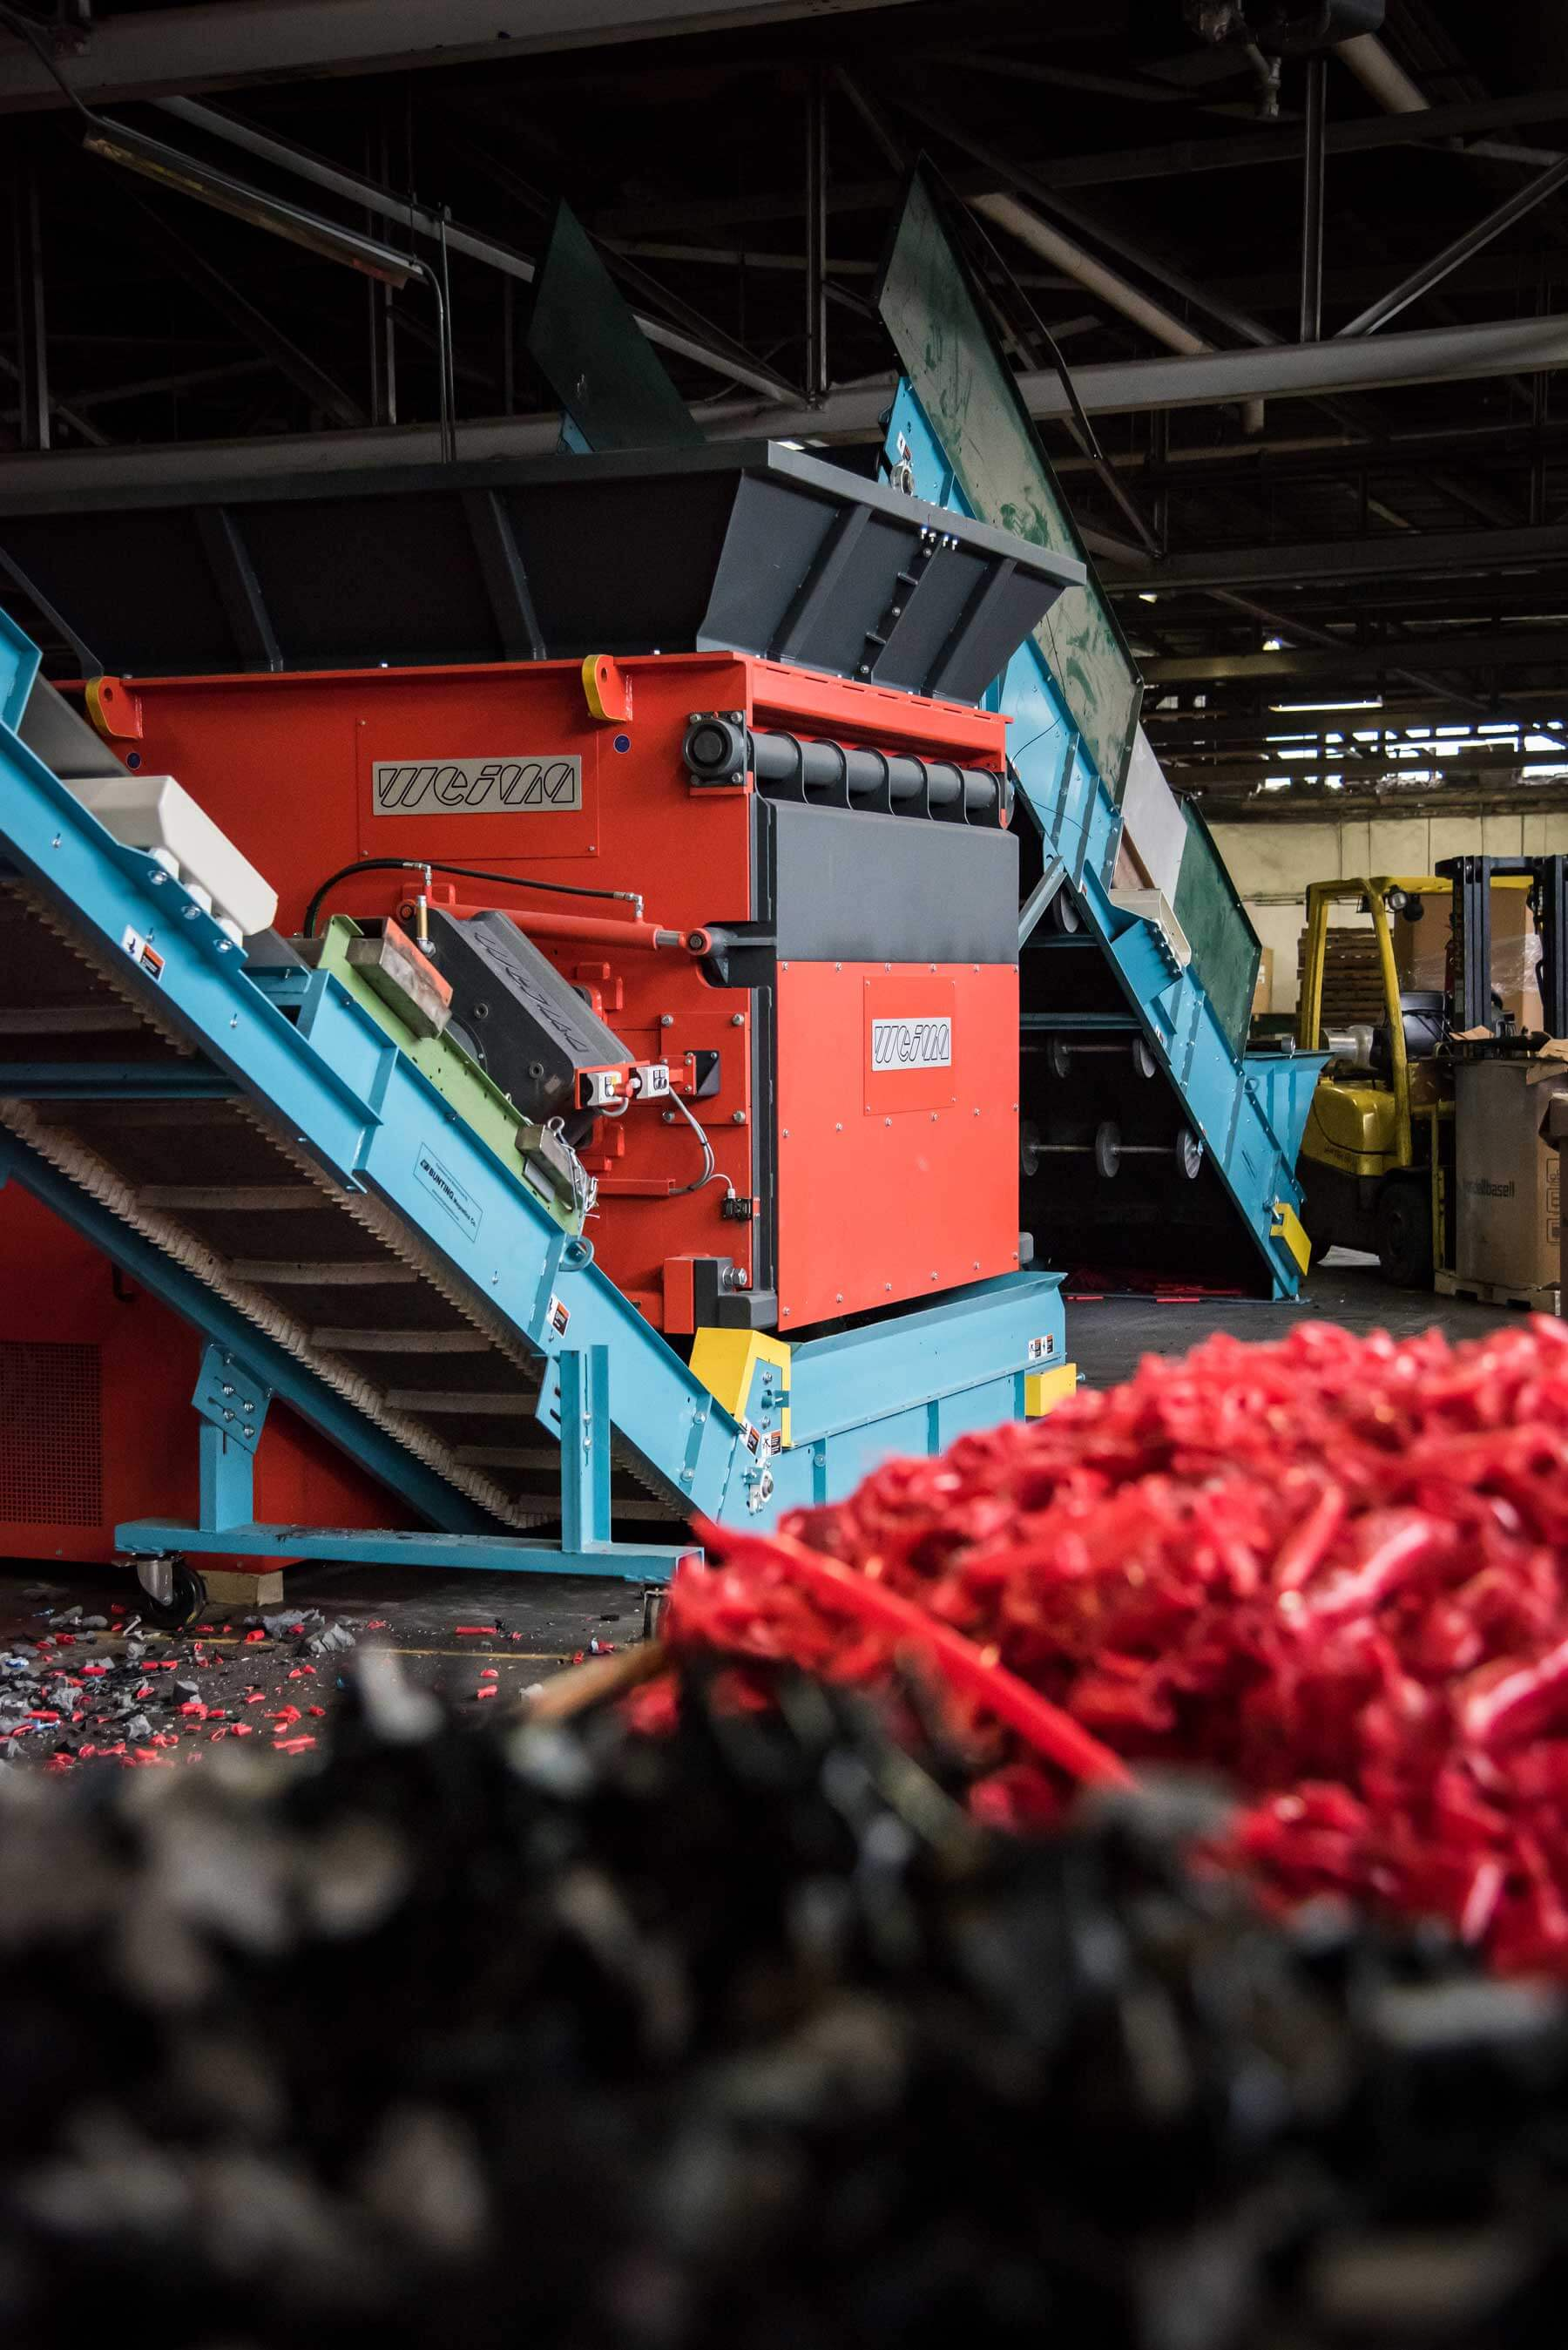 WEIMA WLK 20 Super Jumbo Shredder shreds plastic waste for in-house recycling